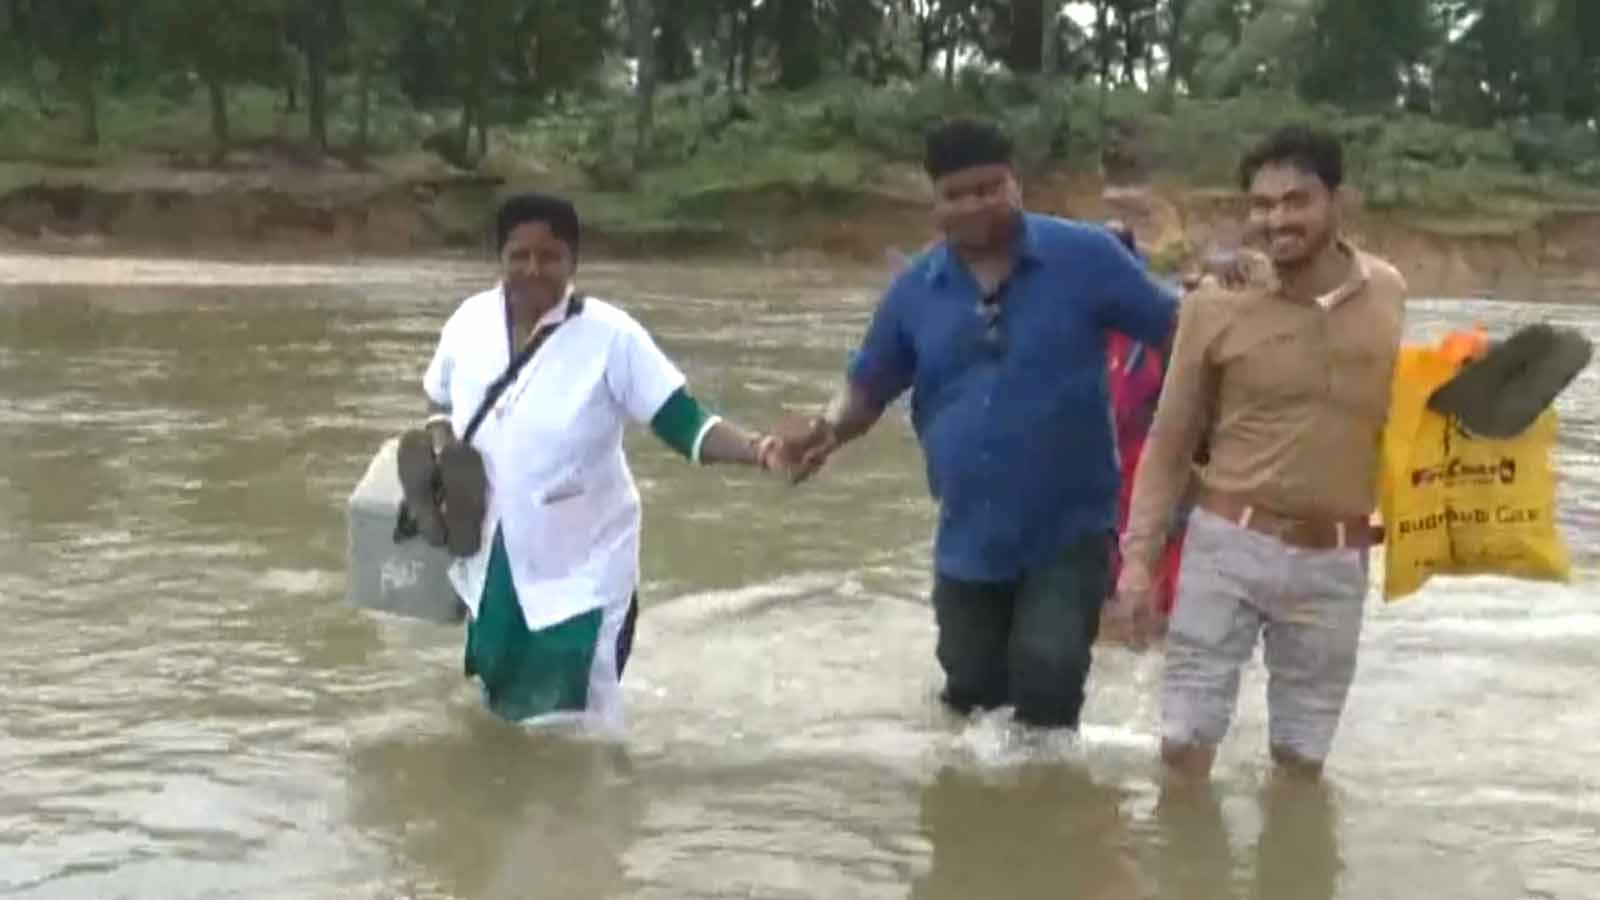 inspiring-this-woman-crossed-river-on-foot-to-provide-healthcare-services-to-locals-in-chhattisgarh